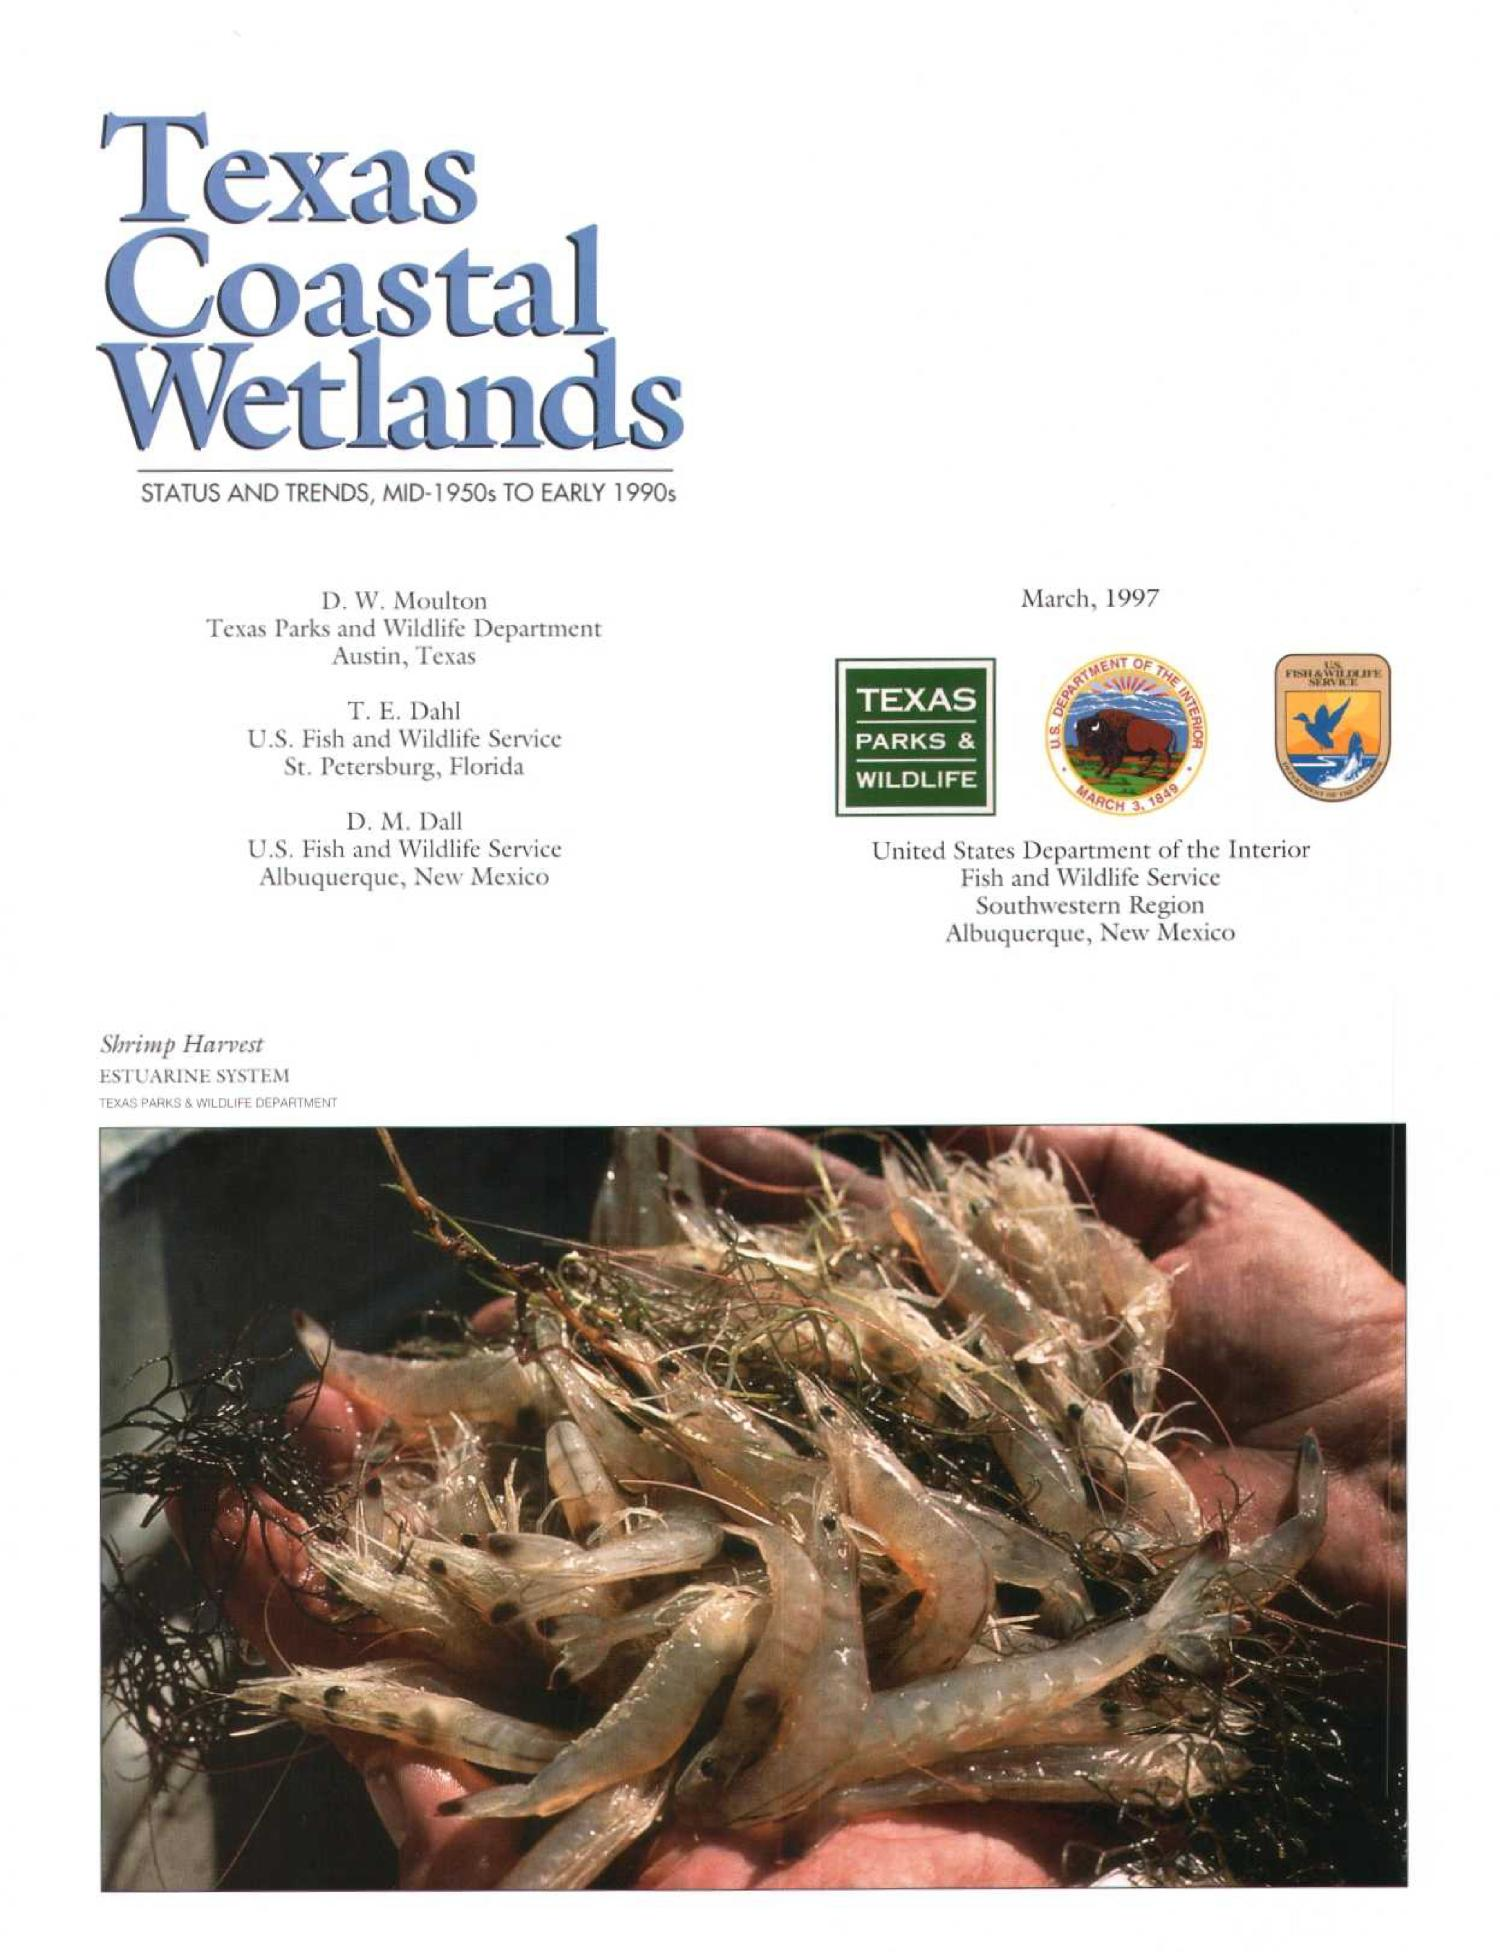 Texas Costal Wetlands: Status and Trends, Mid-1950s to Early 1990s                                                                                                      [Sequence #]: 2 of 34